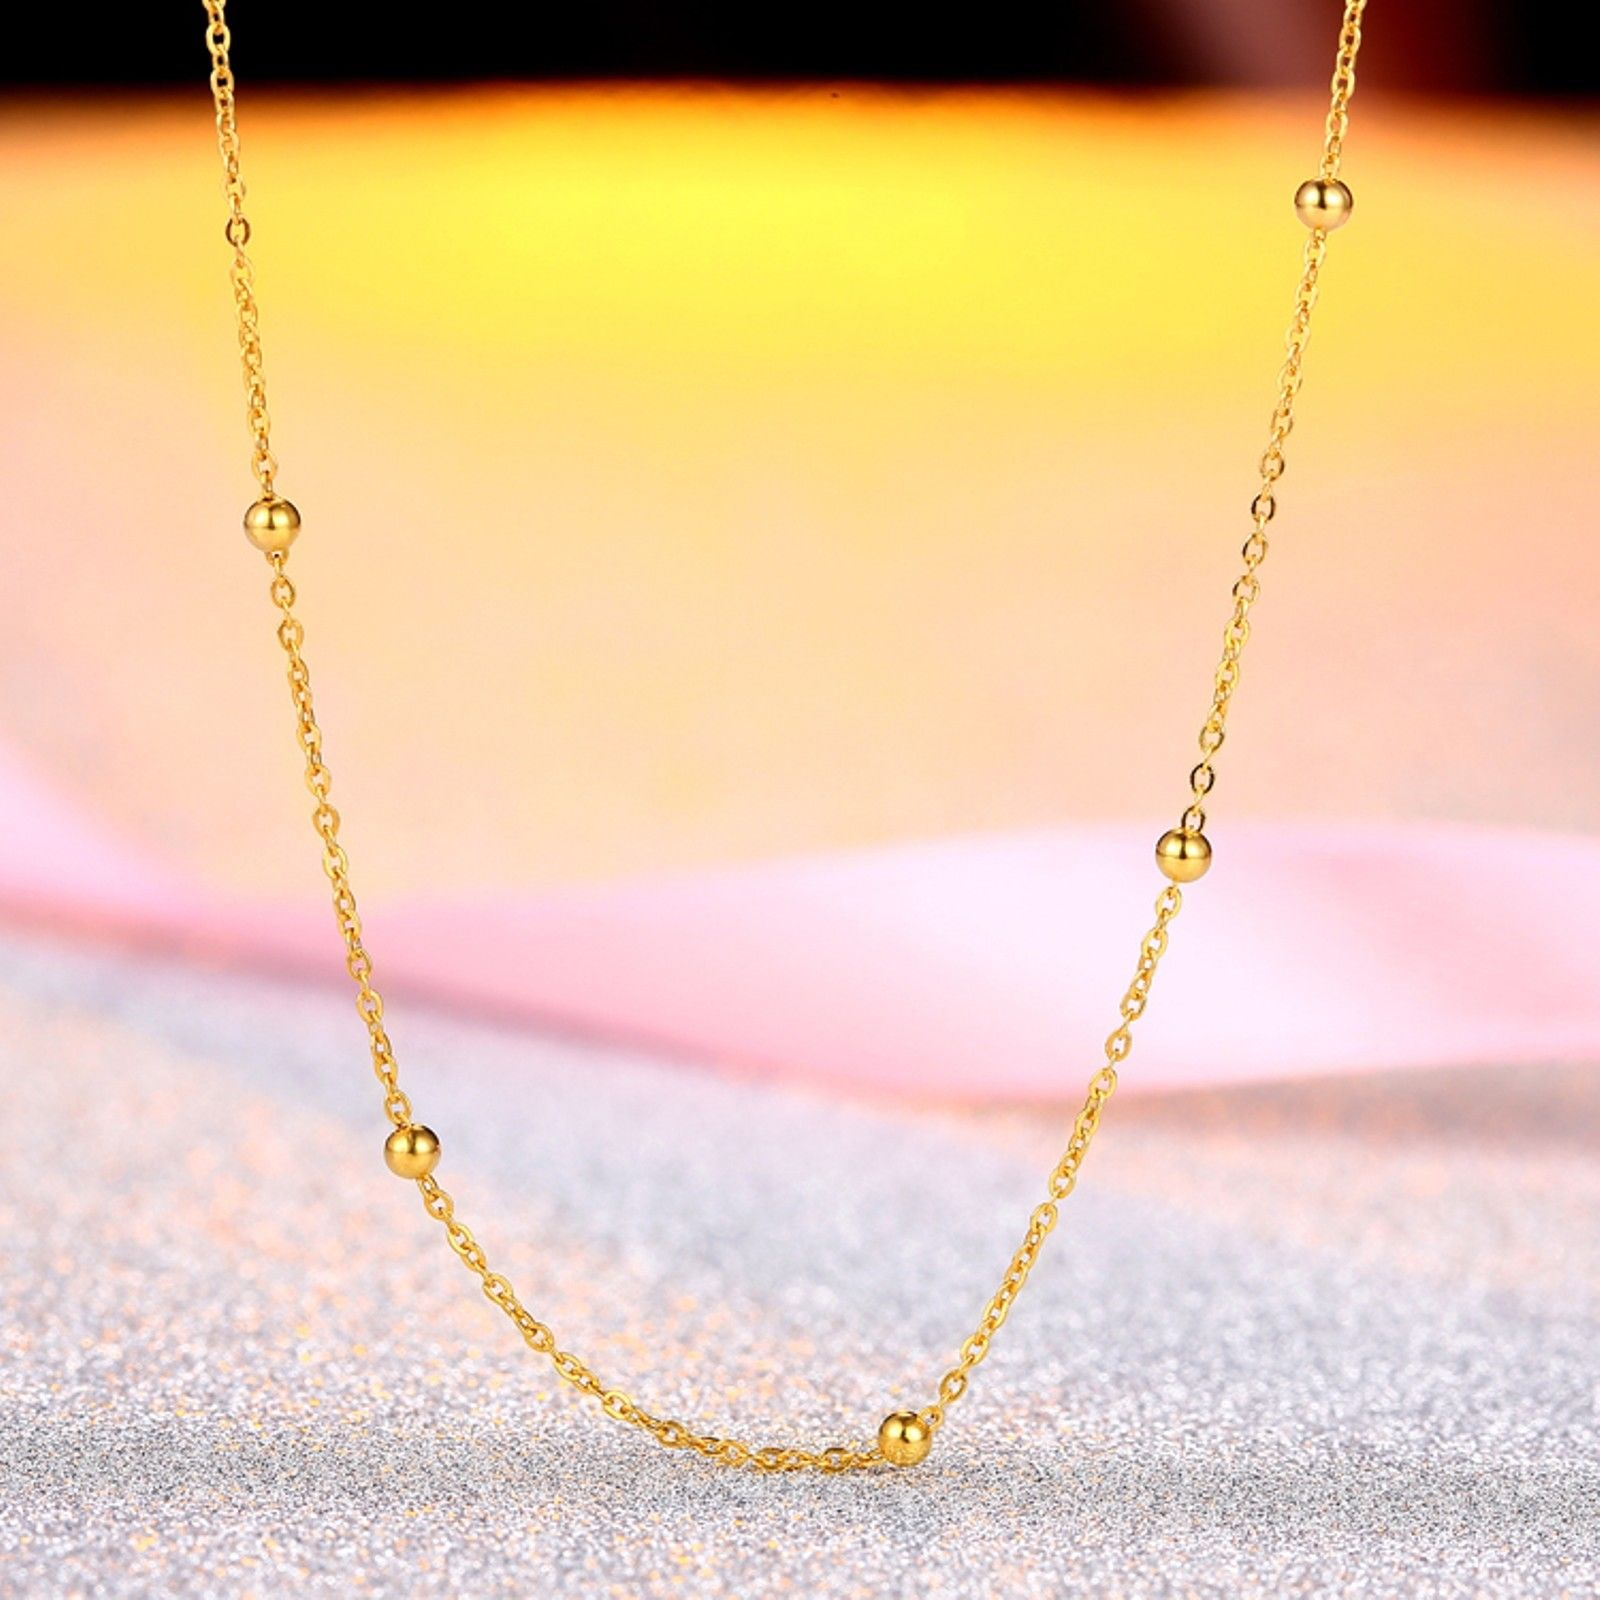 New Real 18k Yellow Gold Chain Women Lucky O Beads Link Necklace 18inchNew Real 18k Yellow Gold Chain Women Lucky O Beads Link Necklace 18inch